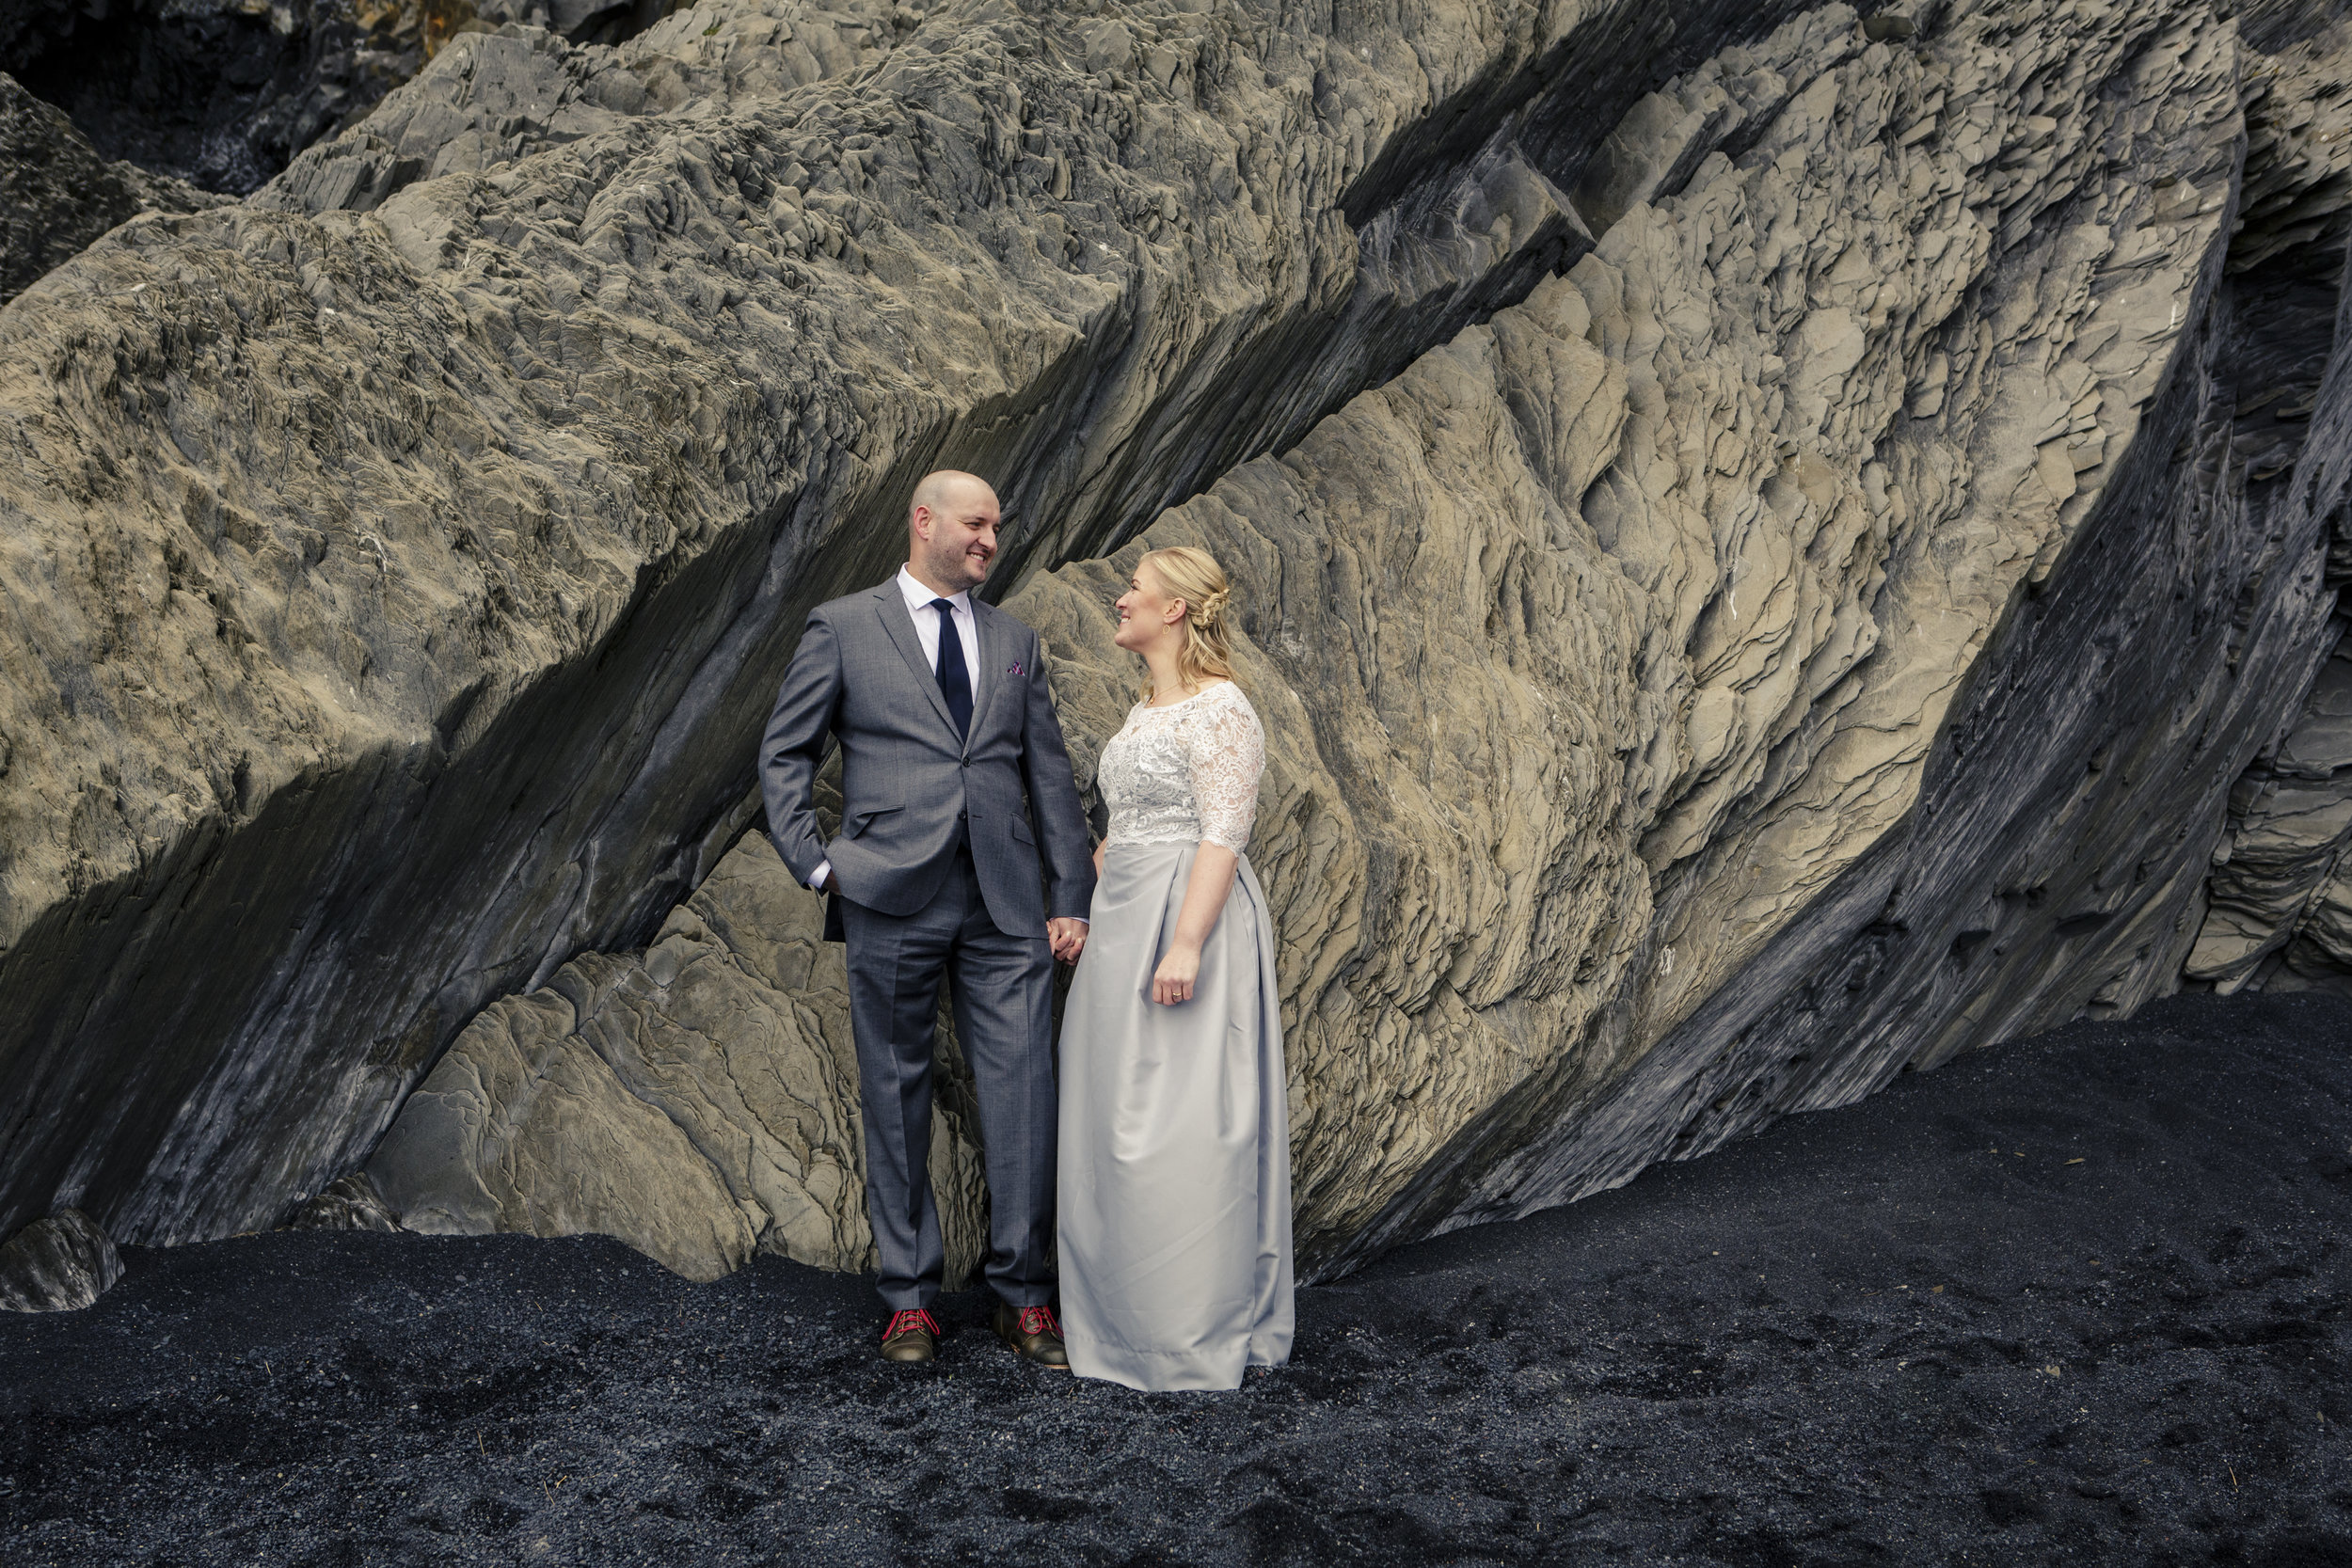 Bride and groom in front of rock feature in Iceland; bride wears dress with carefully crafted pleat at the waist and lace sleeves.